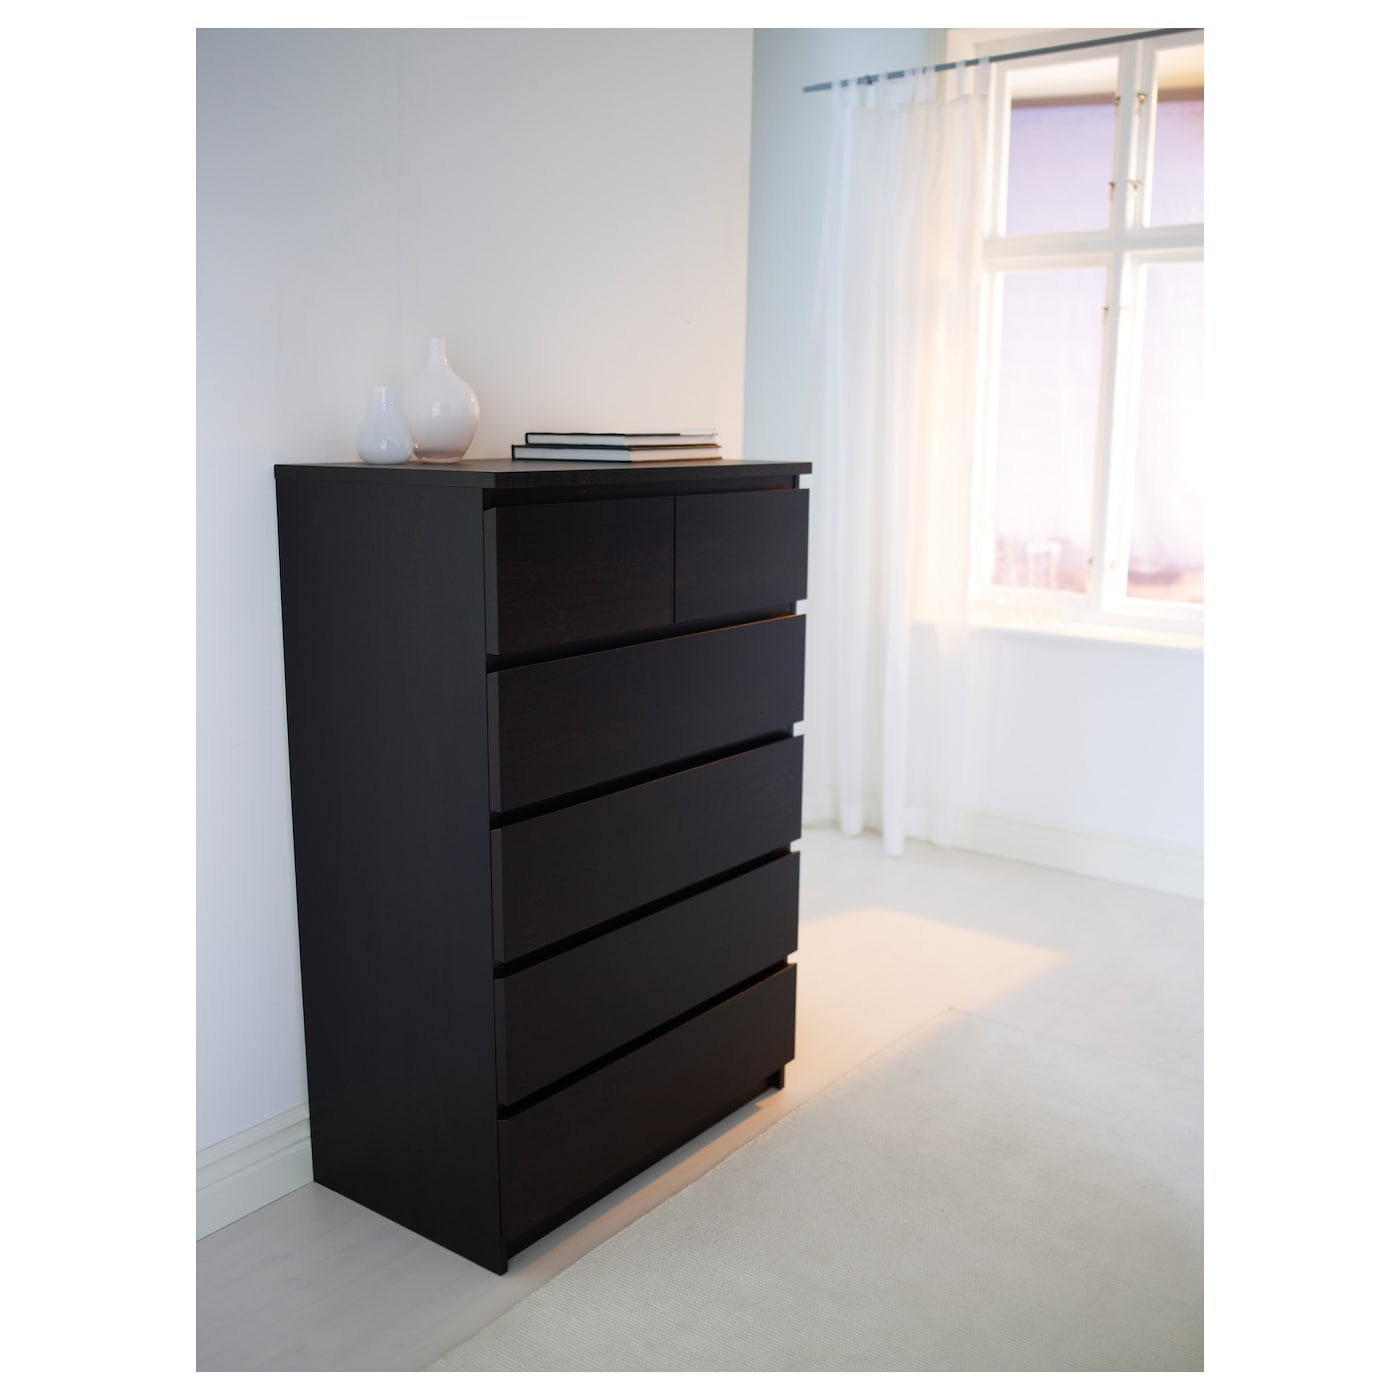 Malm Chest Of 6 Drawers Black Brown 80x123 Cm Ikea